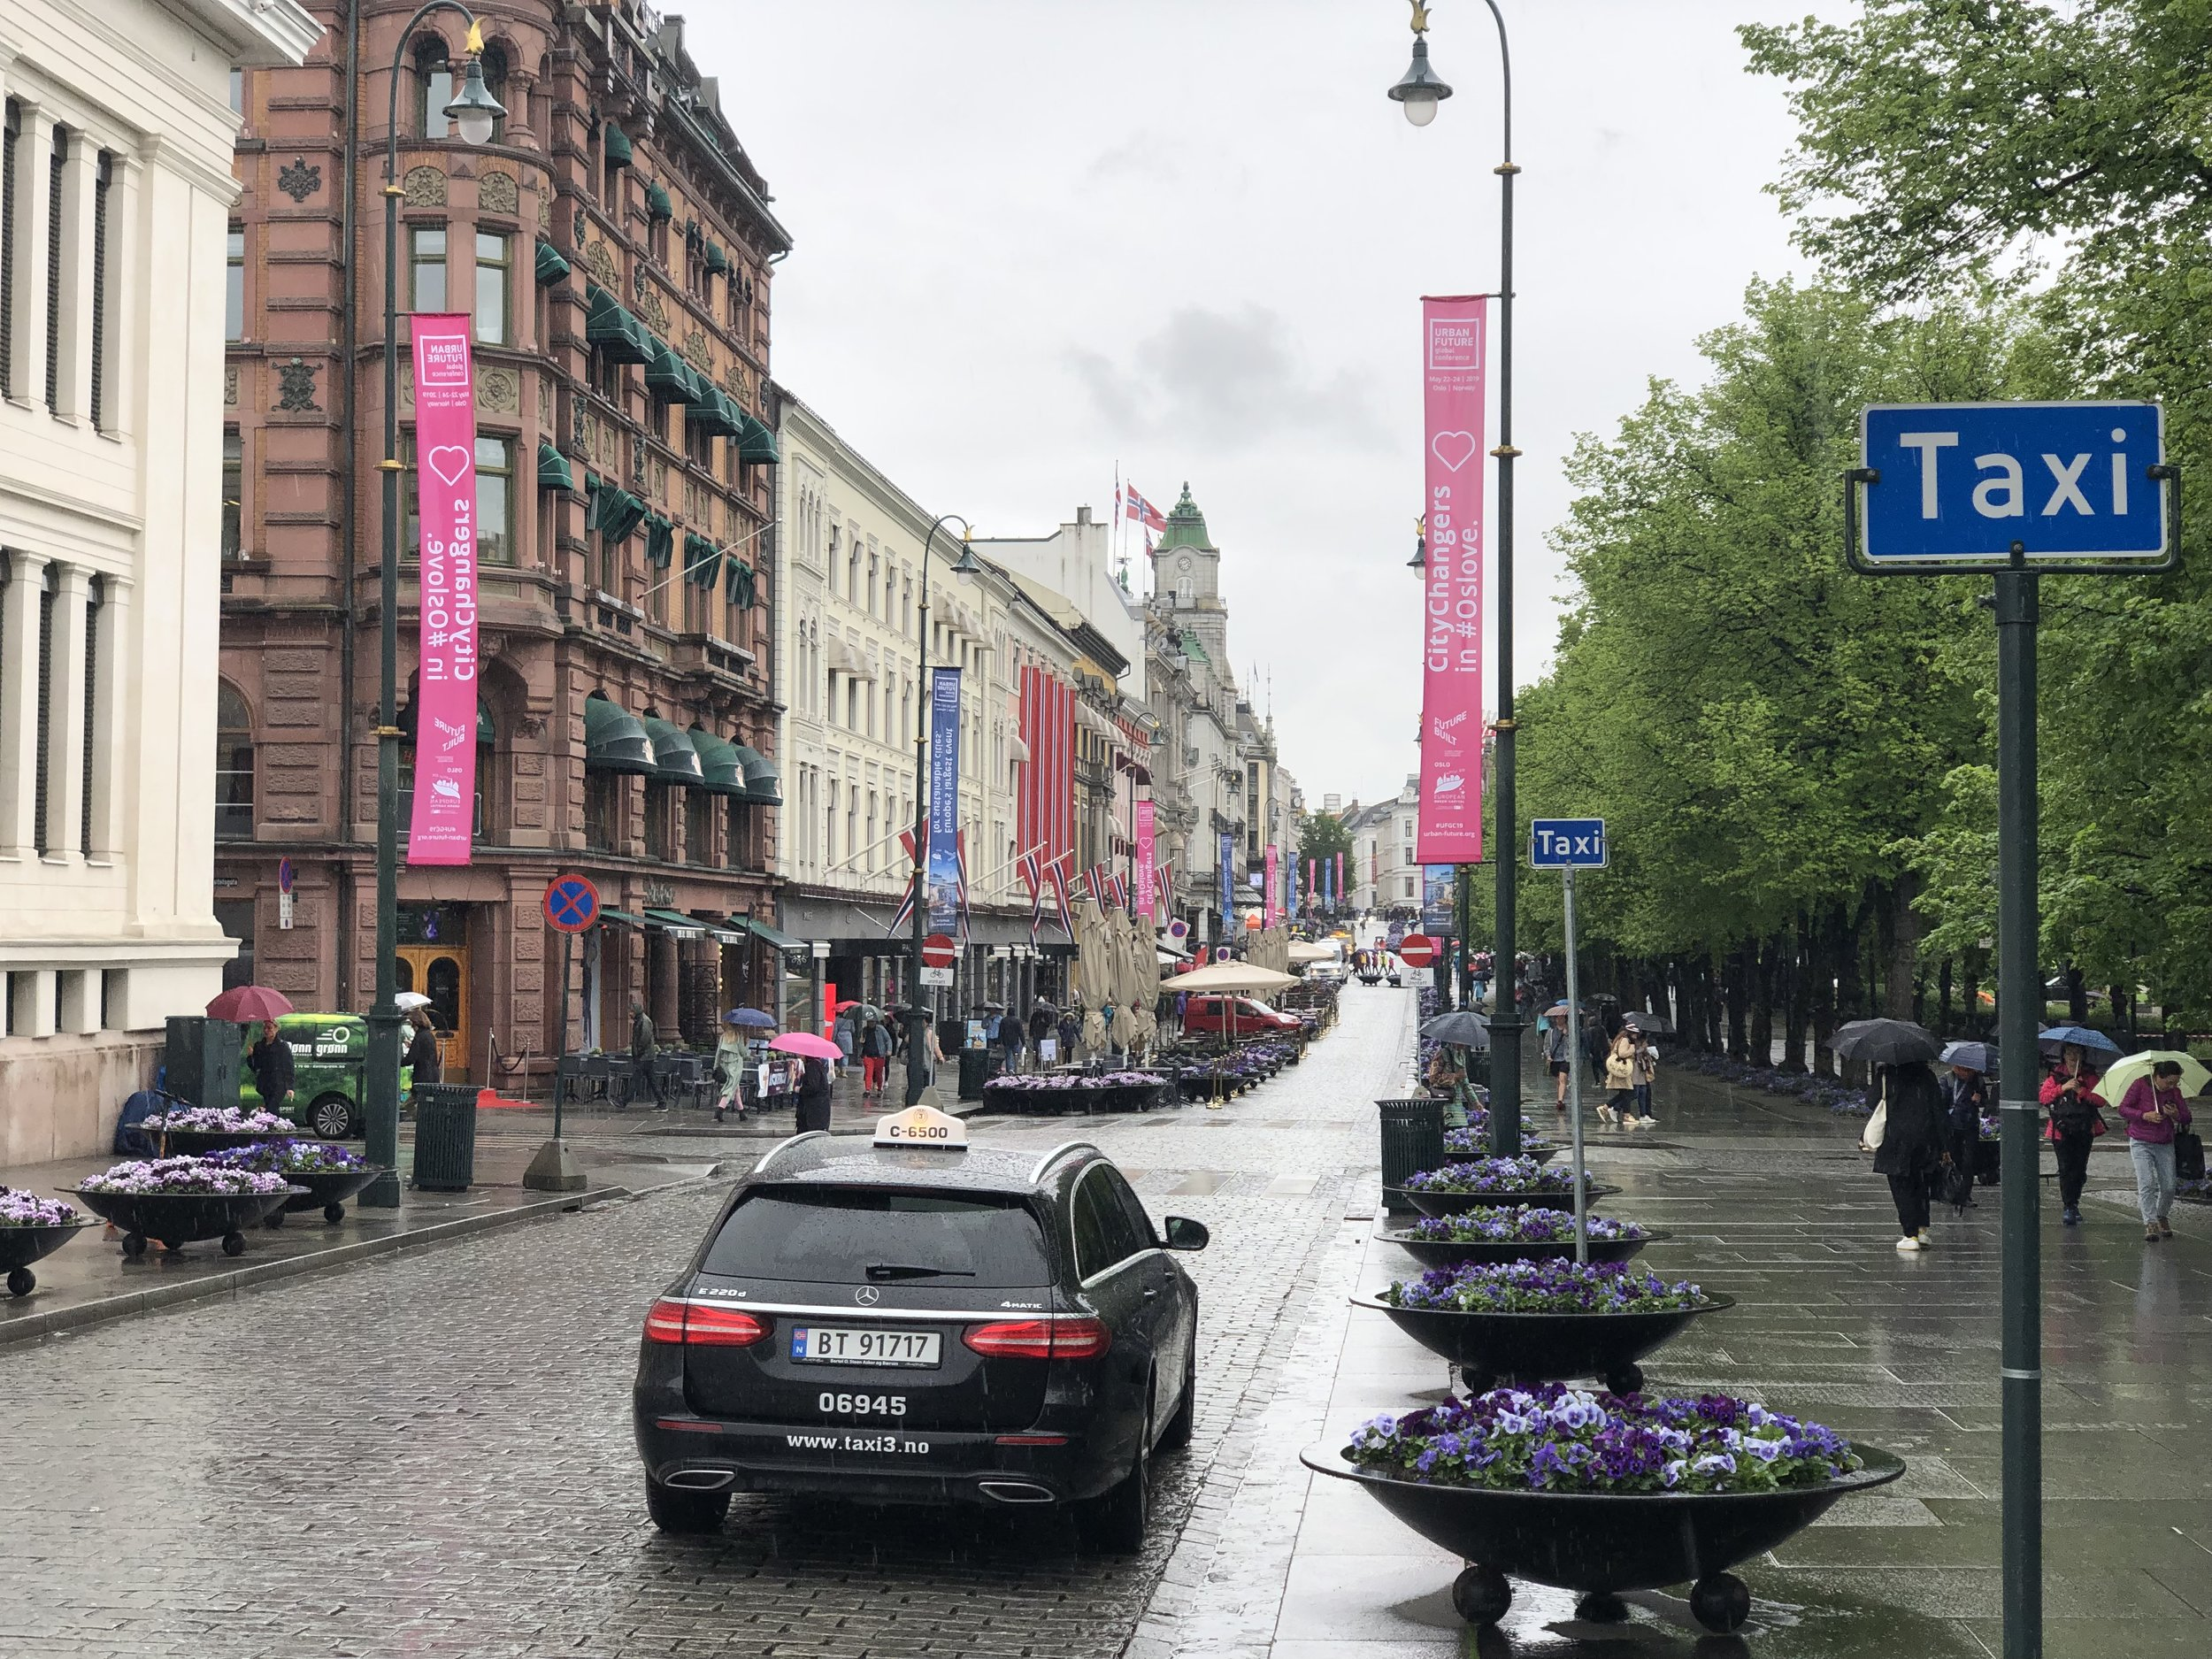 Colorful street in Oslo the was lined with lots of trees and flowers.